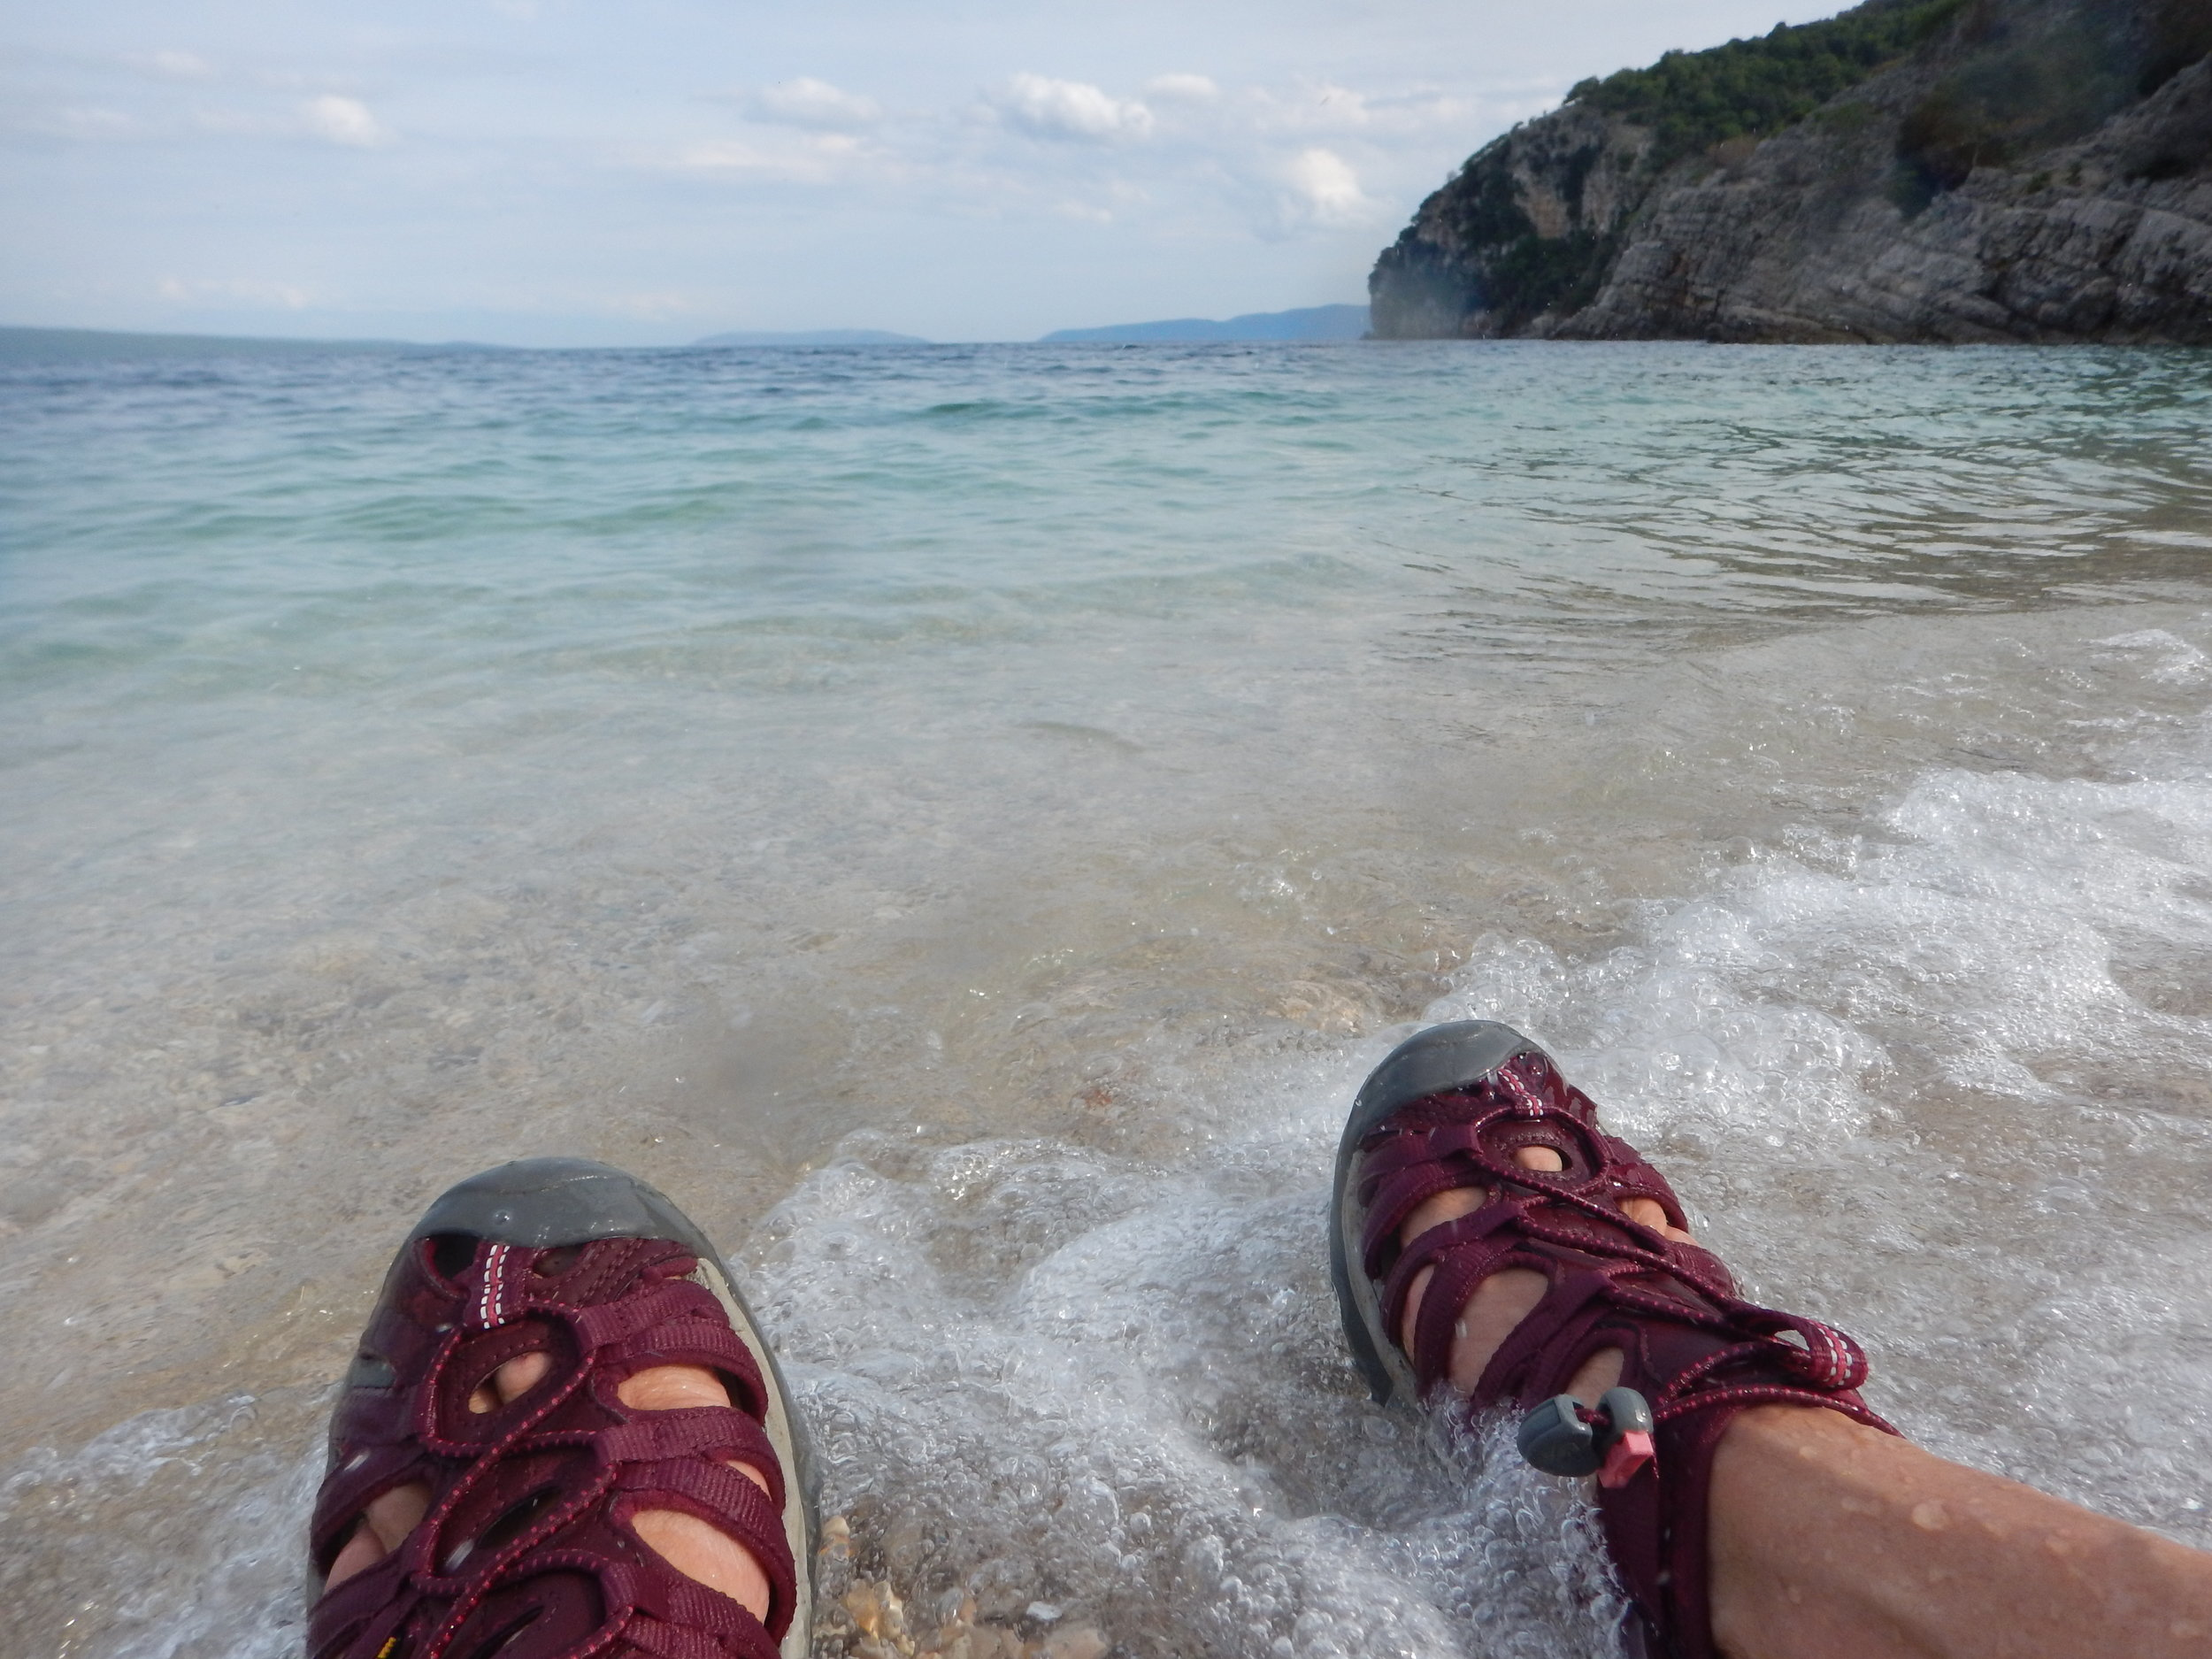 My Keen sandals, an absolute gift to have them, this summer they are my go everywhere shoe. Here they are on Beli beach after tramping 10 km through beech and oak forests to visit a labyrinth.